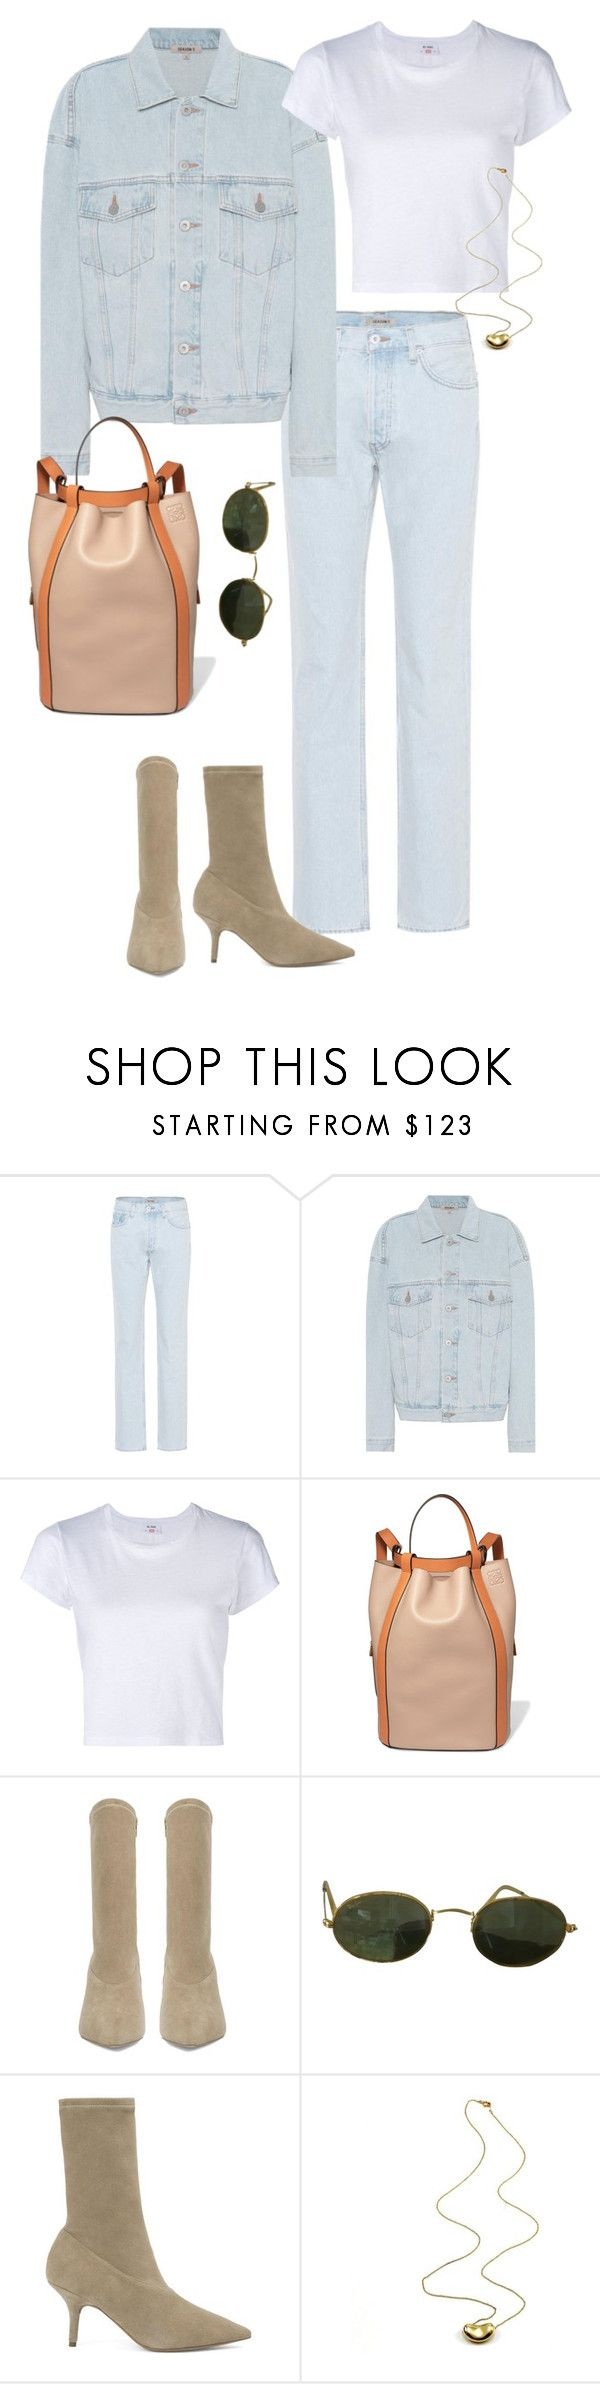 """""""27/10"""" by deborarosa ❤ liked on Polyvore featuring Yeezy by Kanye West, RE/DONE, Loewe, Ray-Ban and Tiffany & Co."""